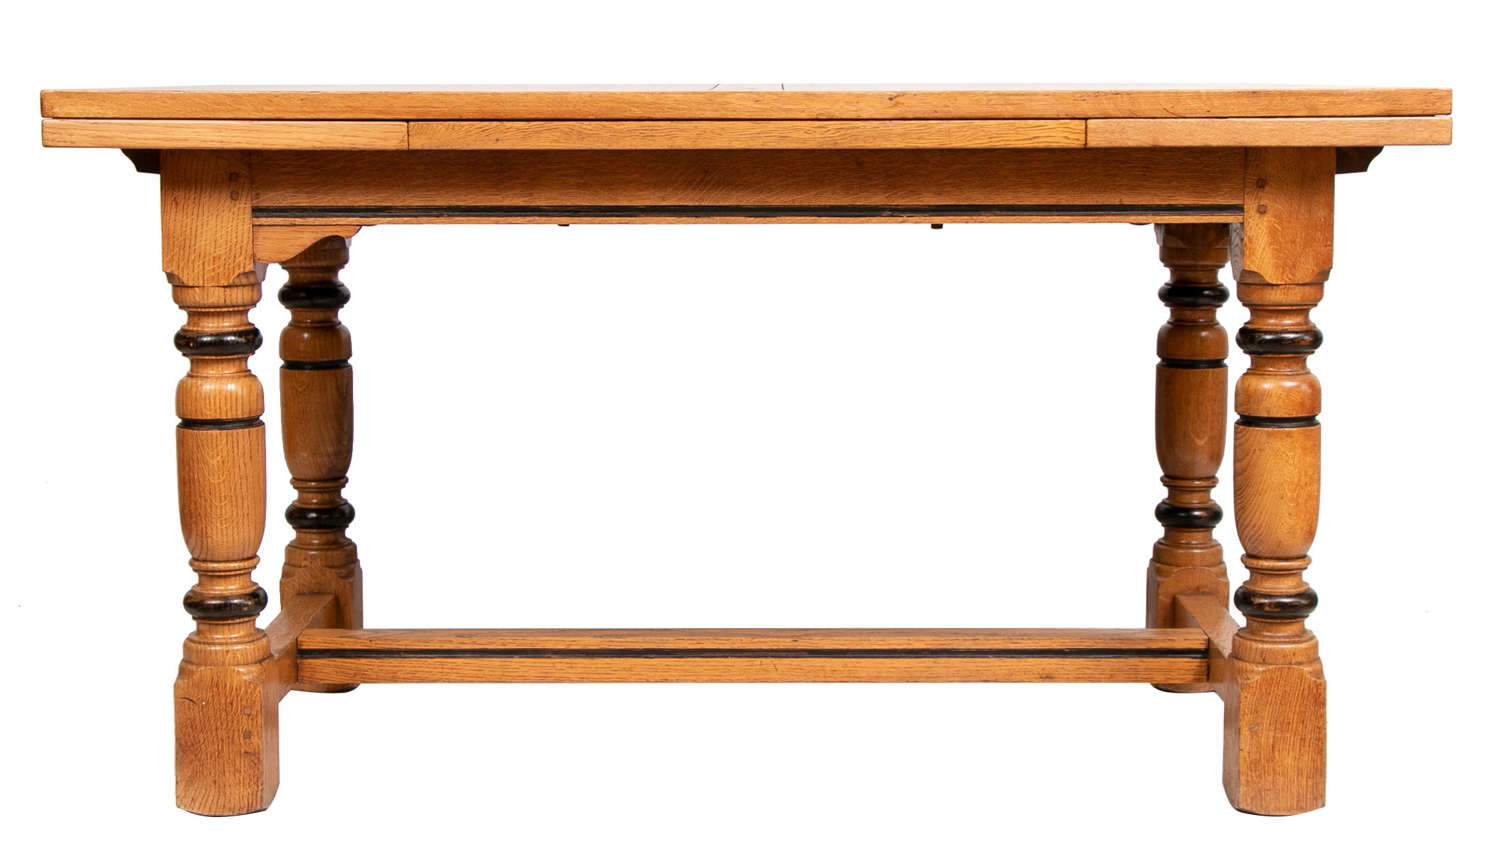 An oak extending dining table with newly polished top